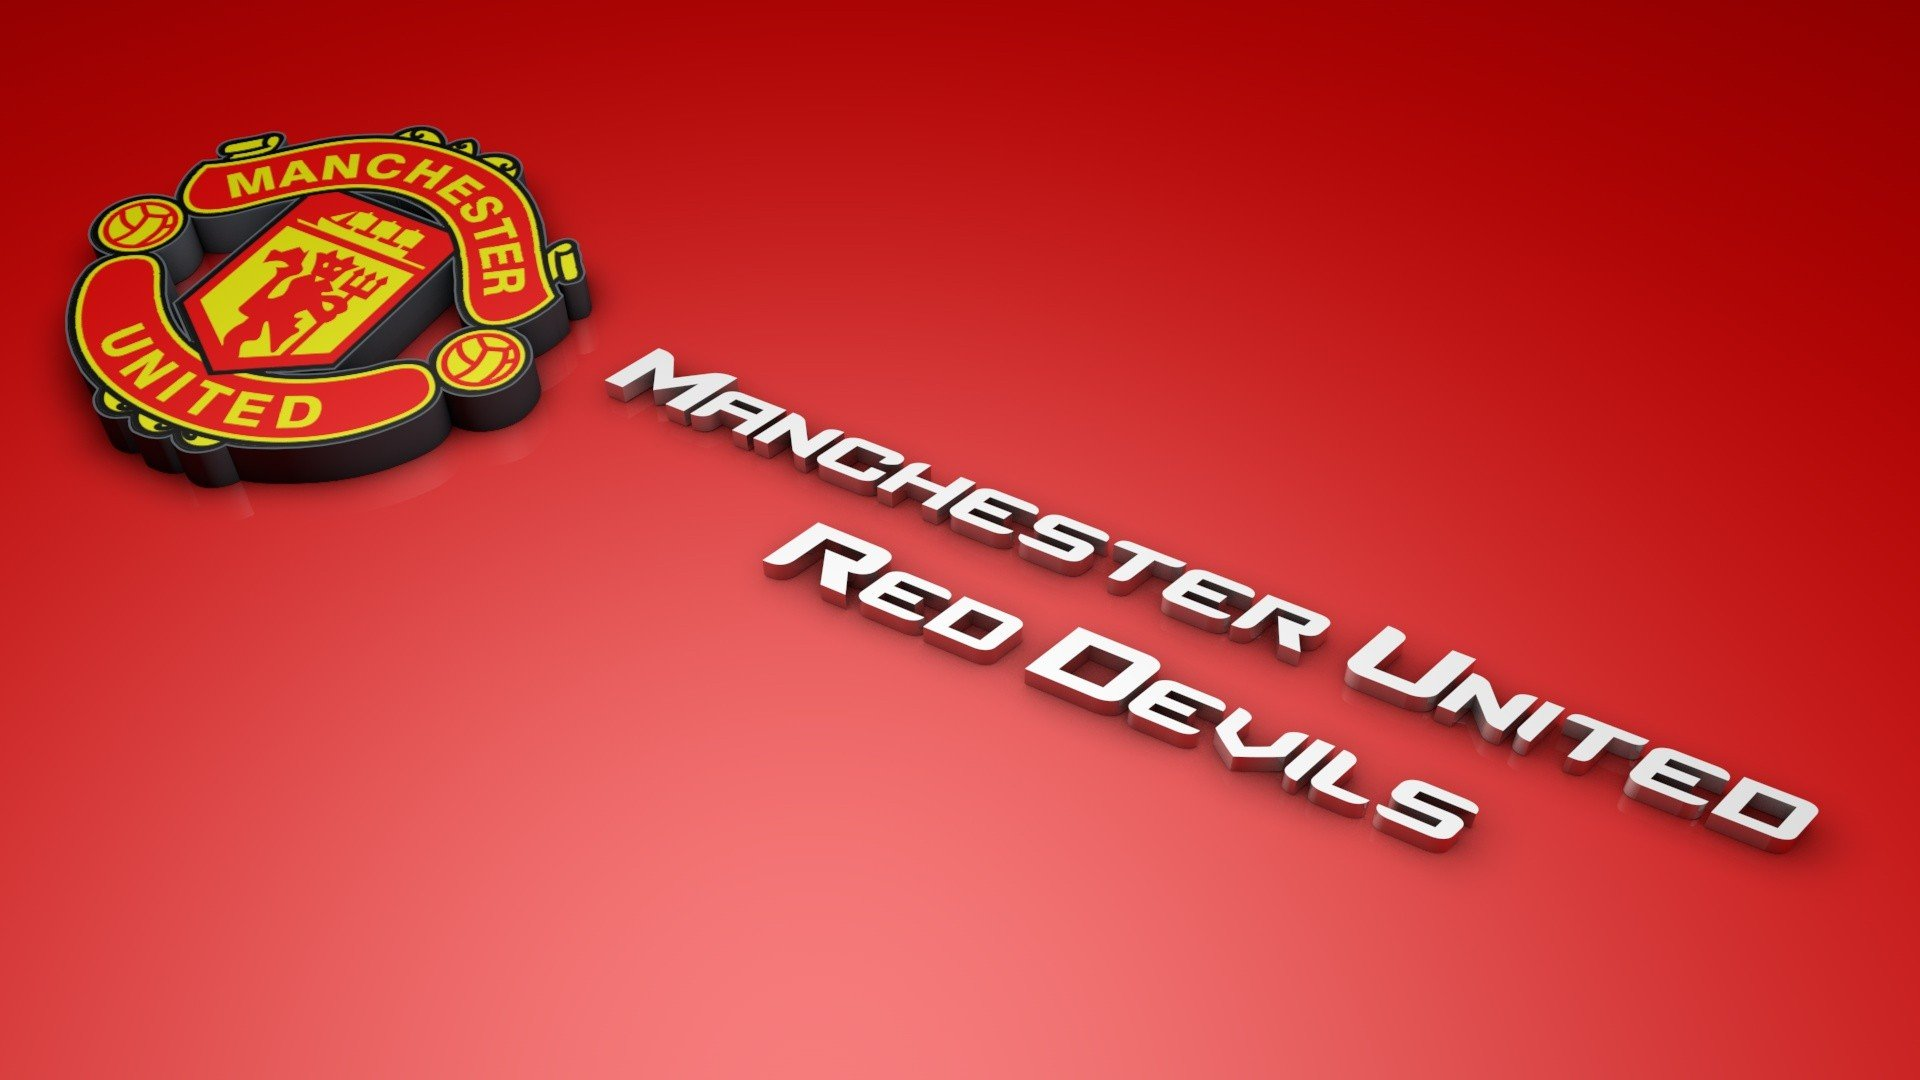 Manchester United Red Devils Wallpaper   Football HD Wallpapers 1920x1080